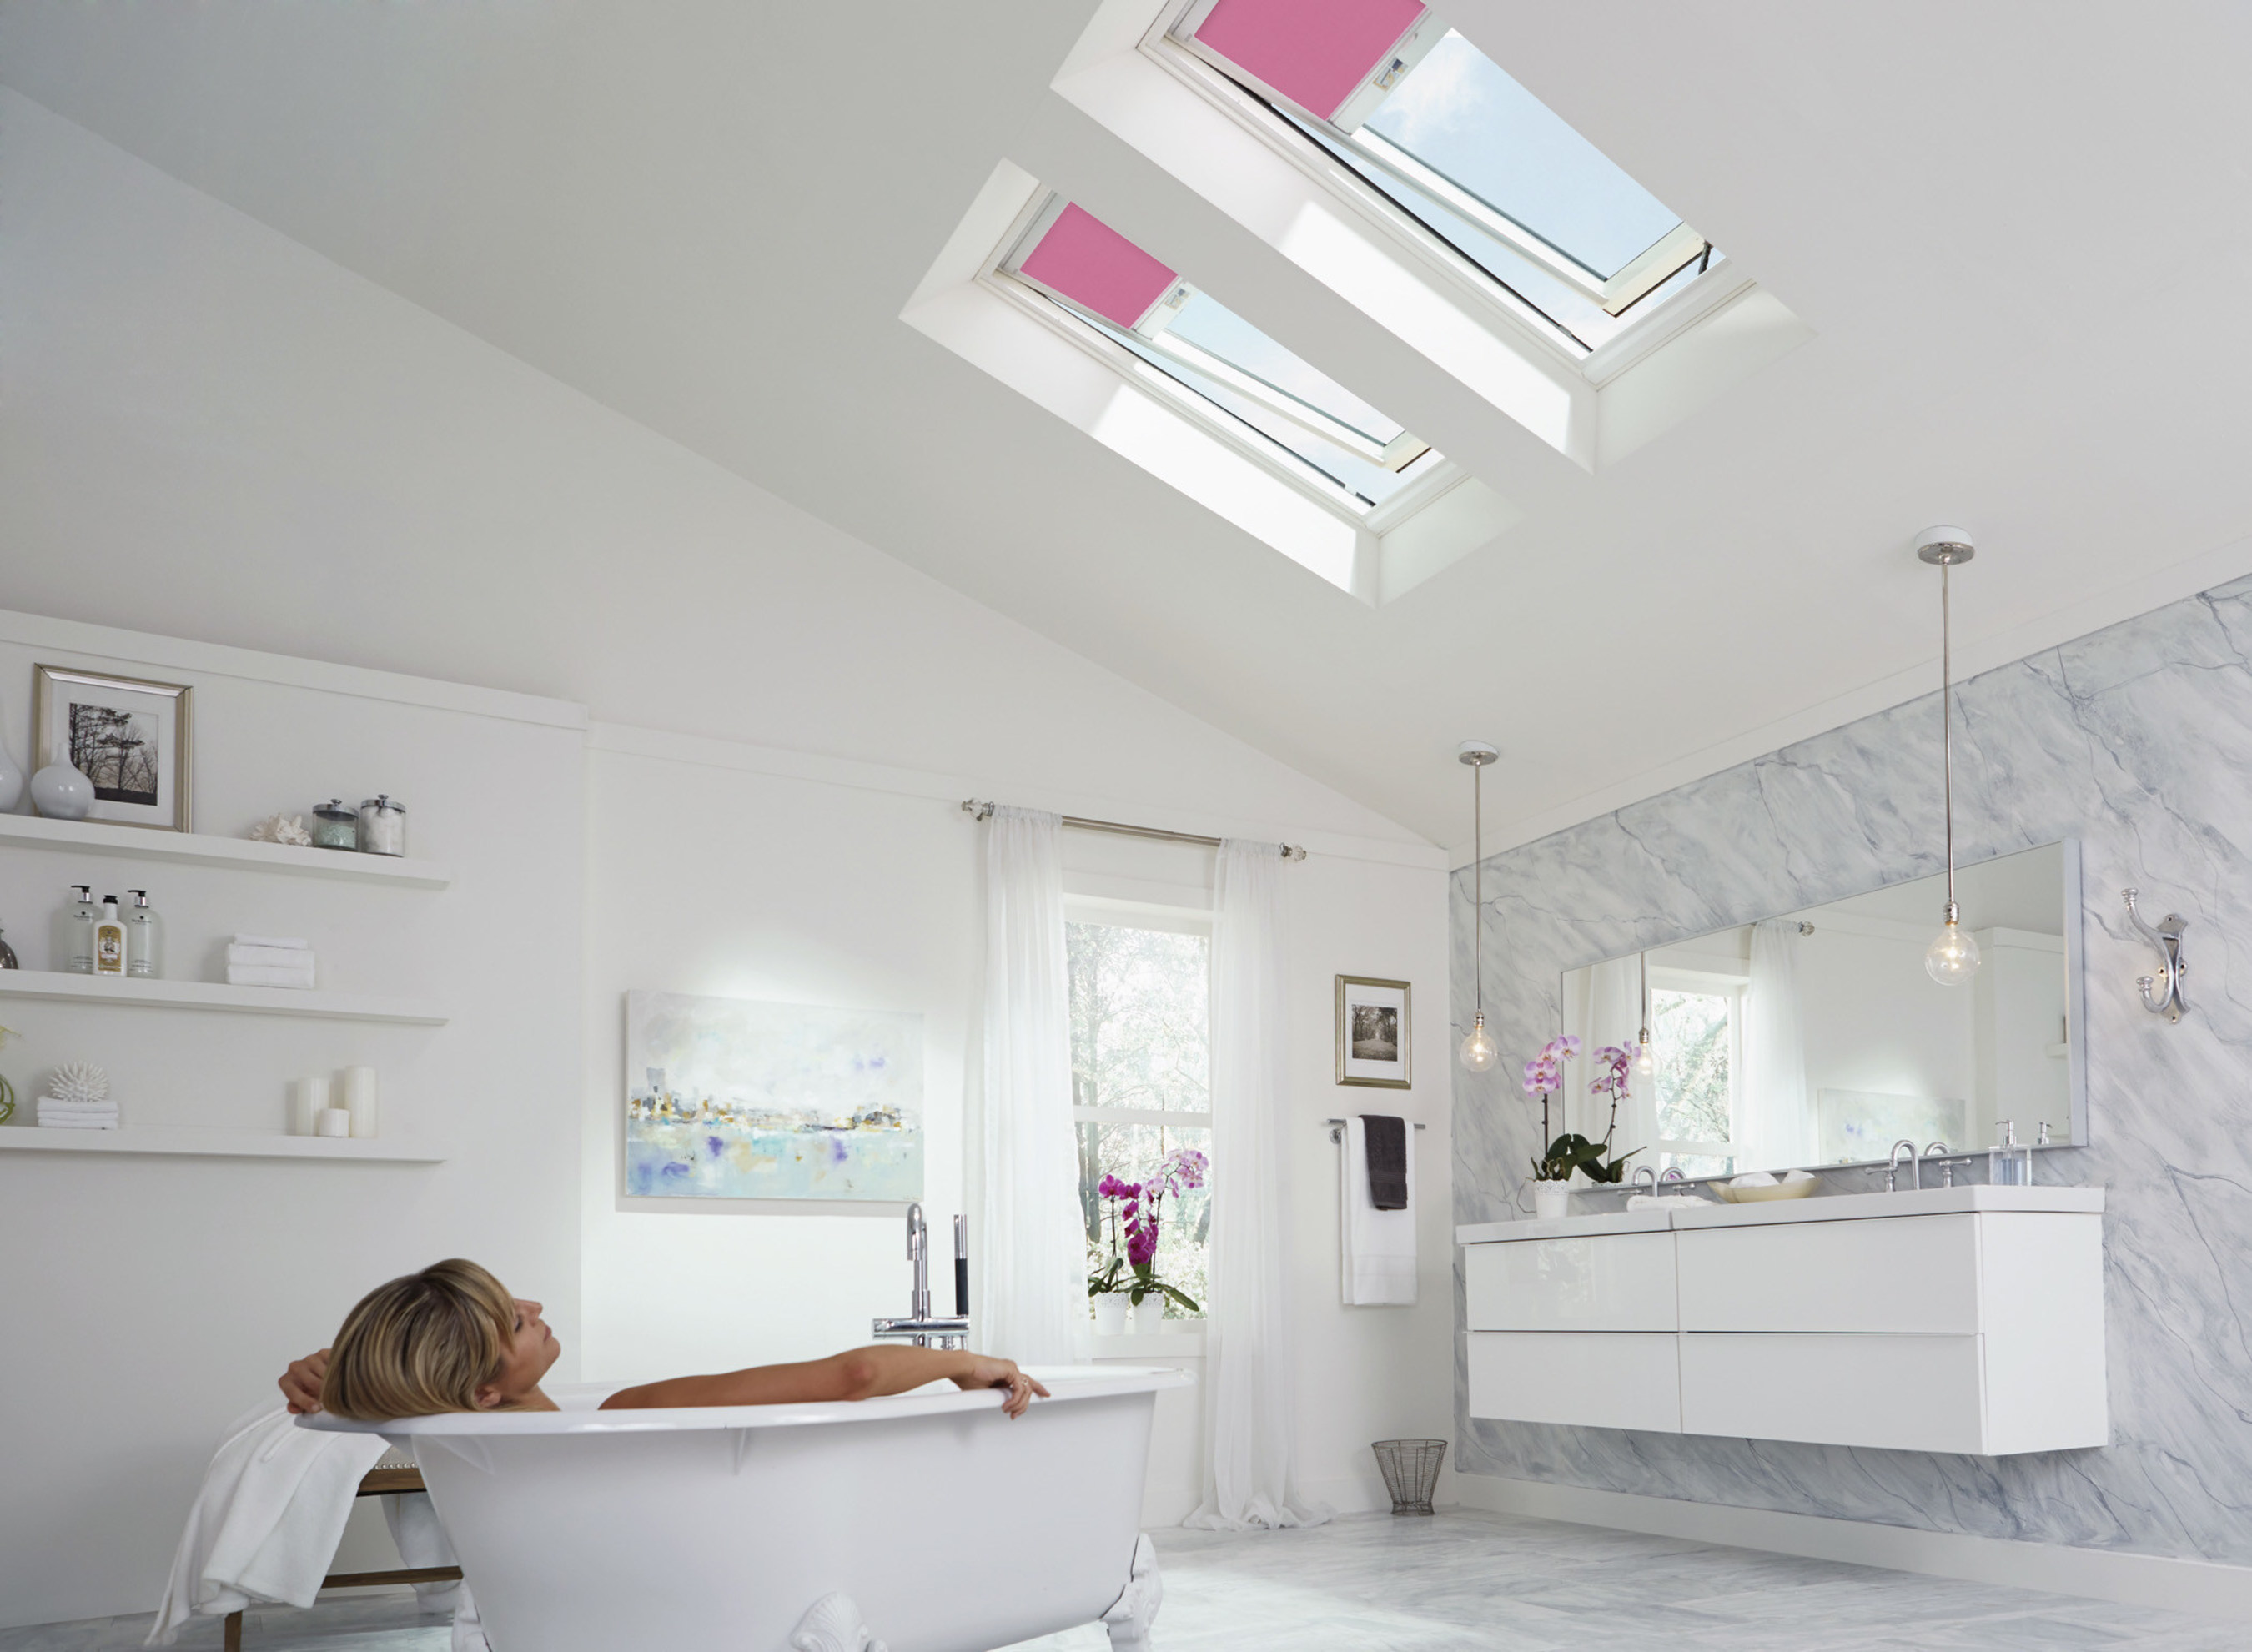 Photo courtesy of Velux Skylights